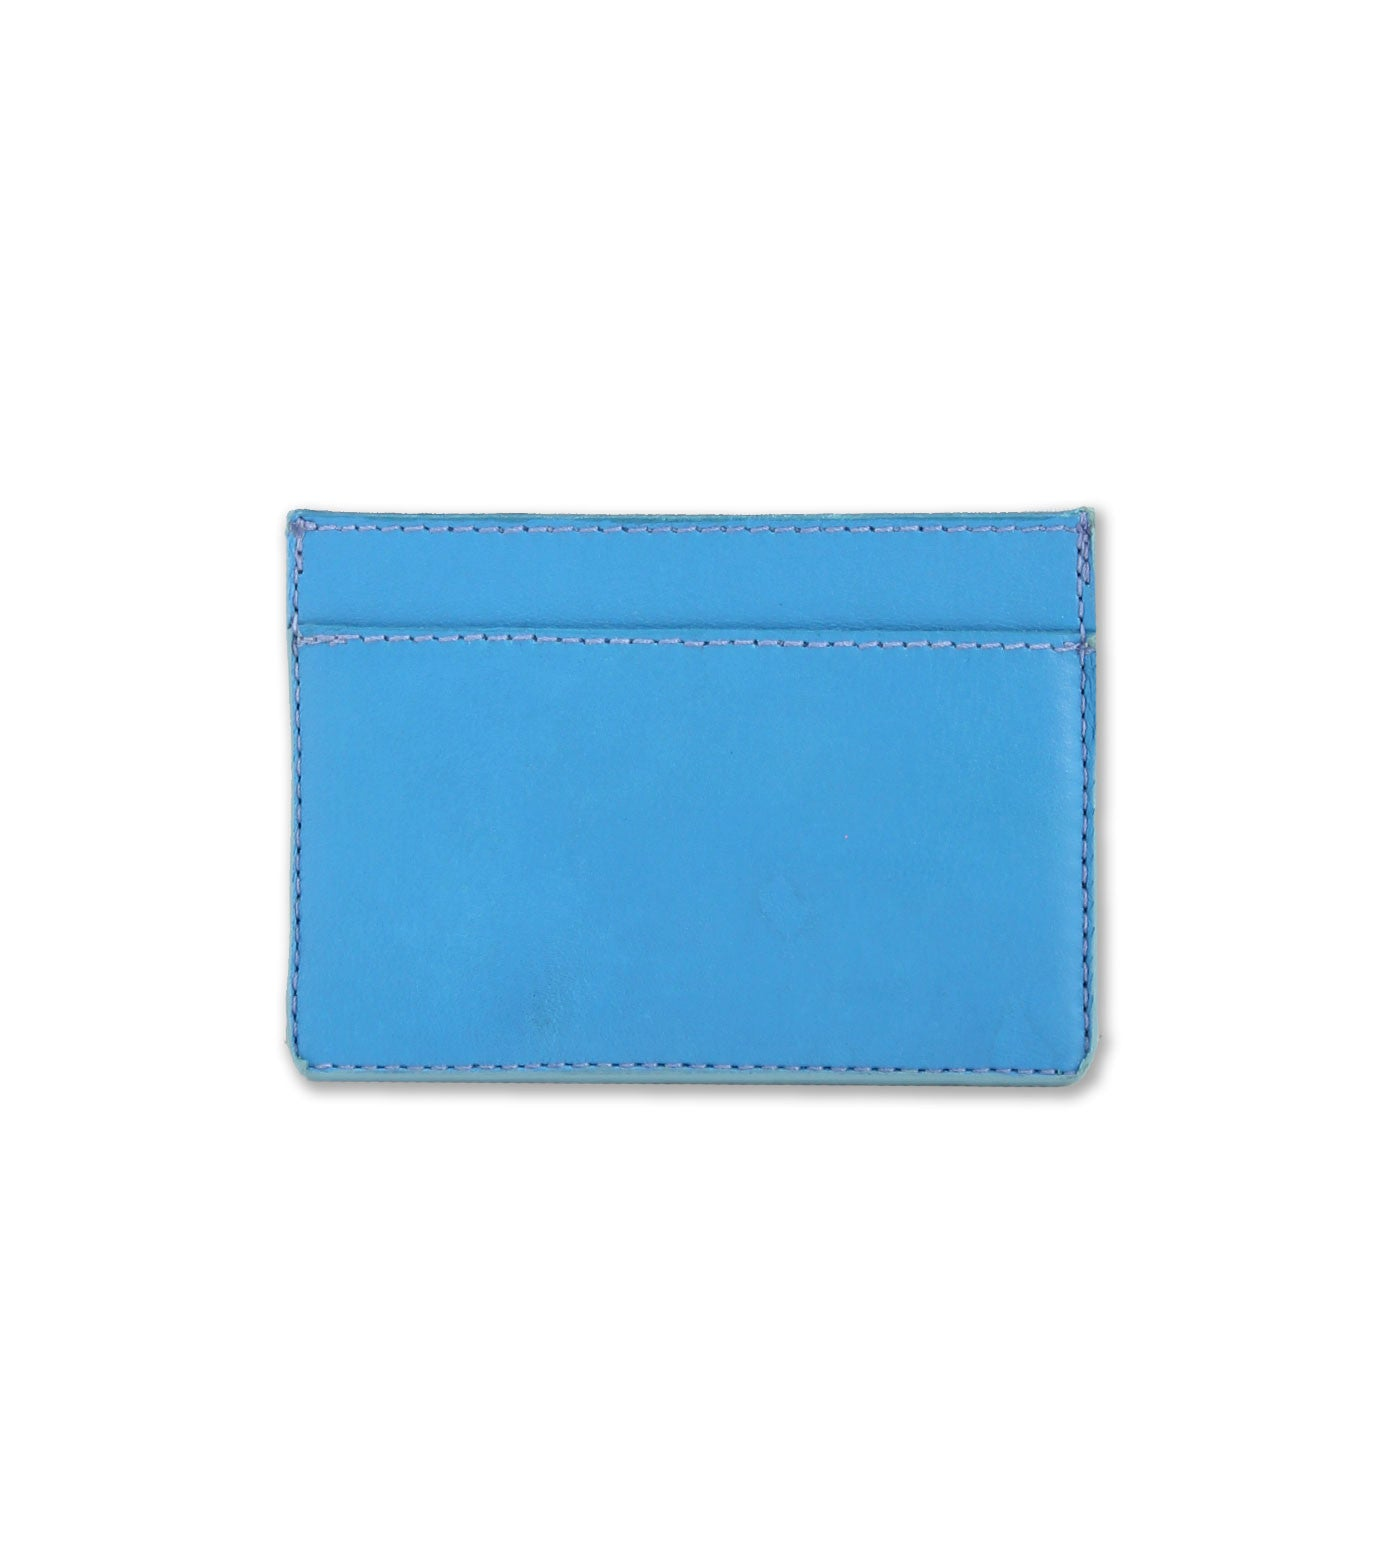 DTLAcustom Card Case / St Barth's Blue